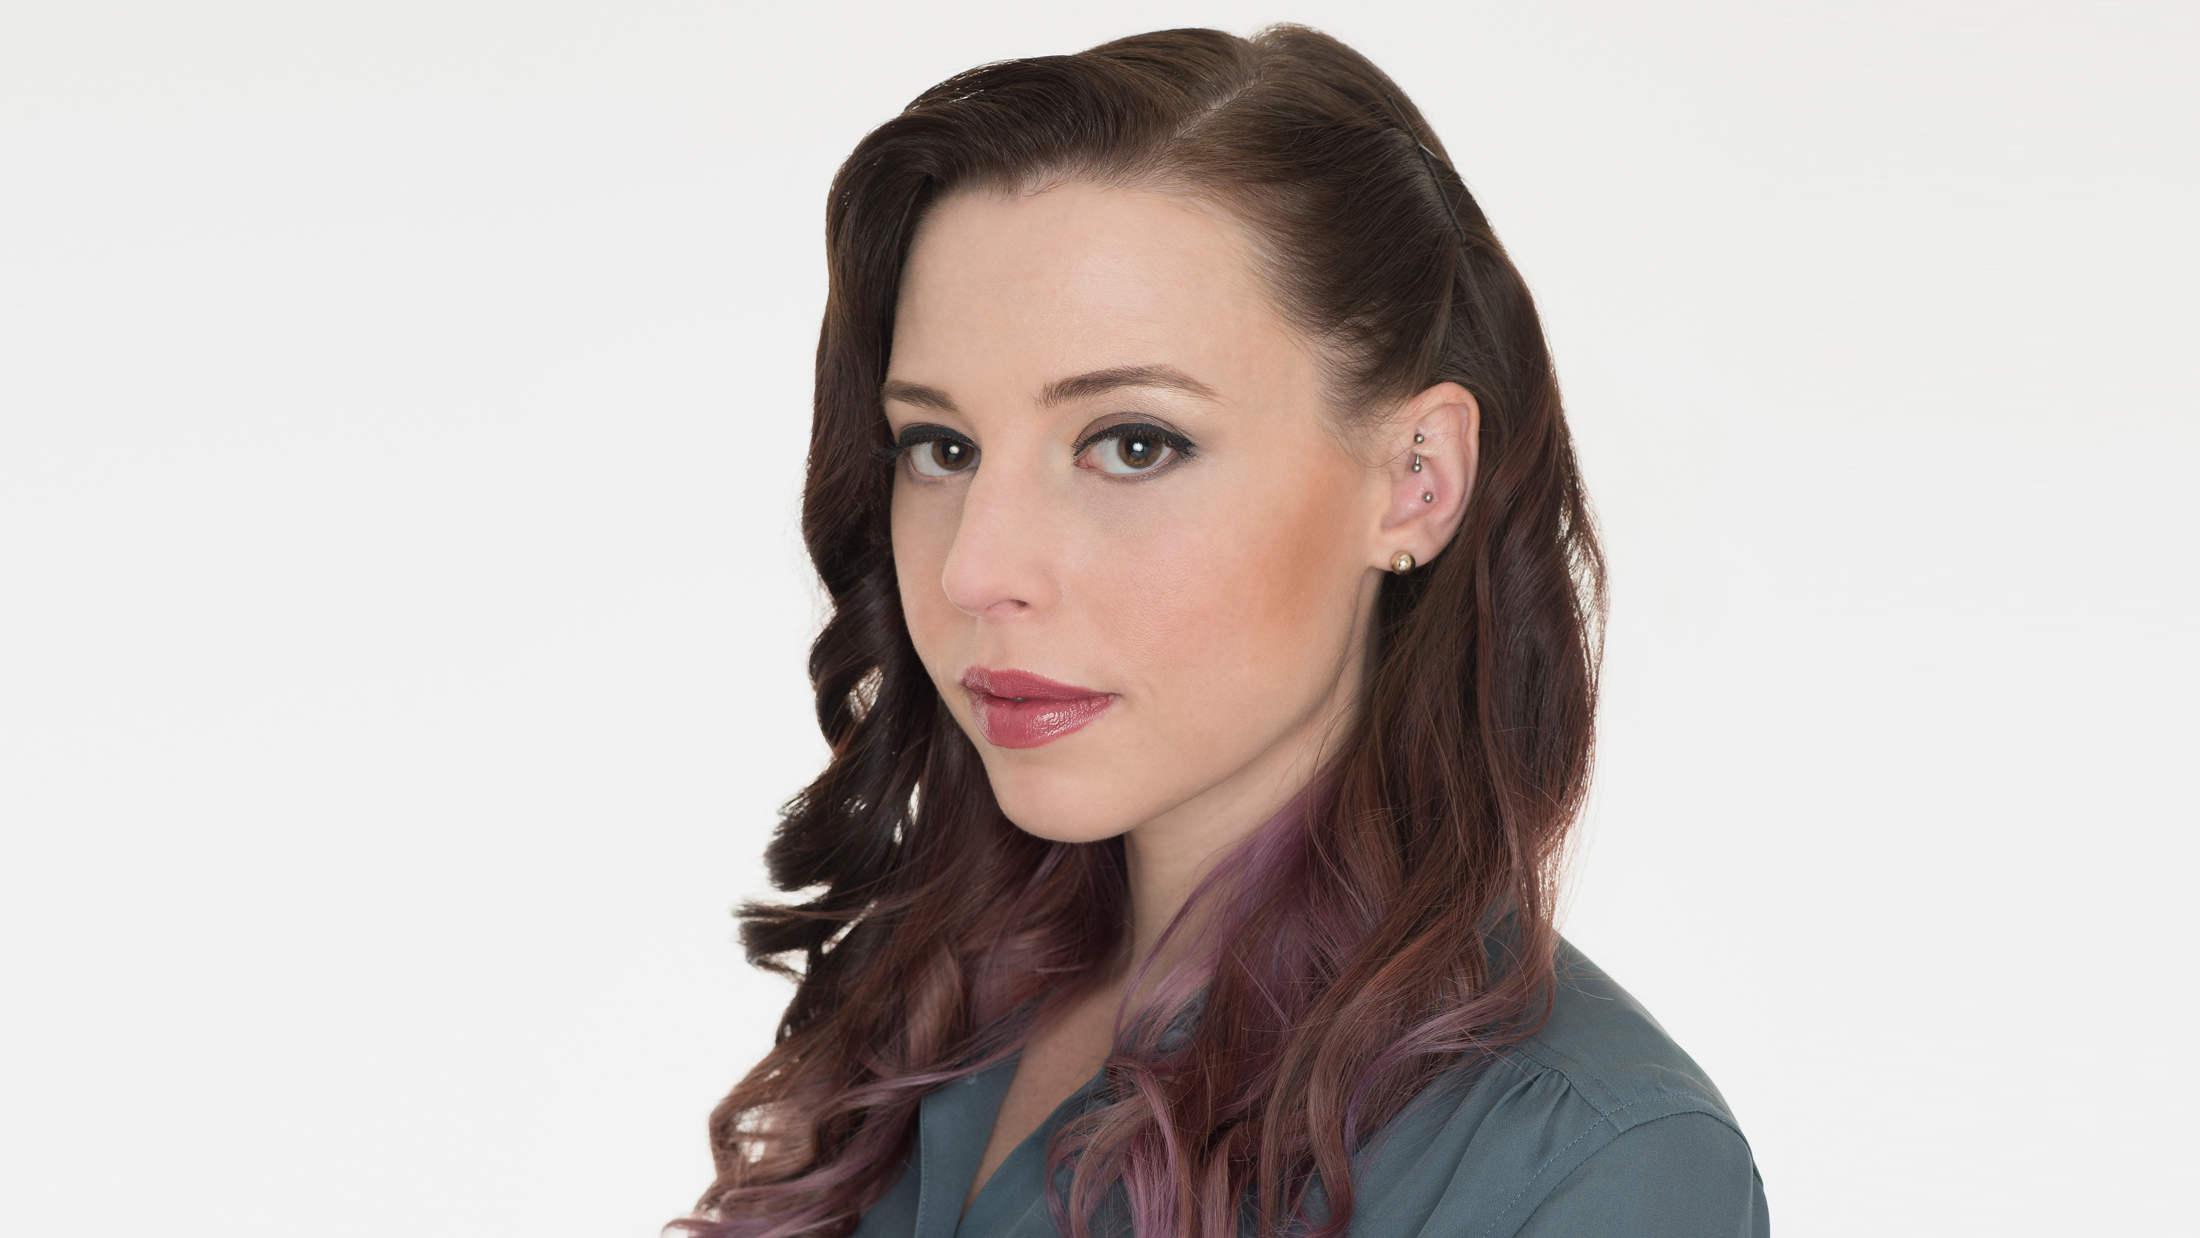 JP Morgan blockchain leader Amber Baldet is disrupting Wall